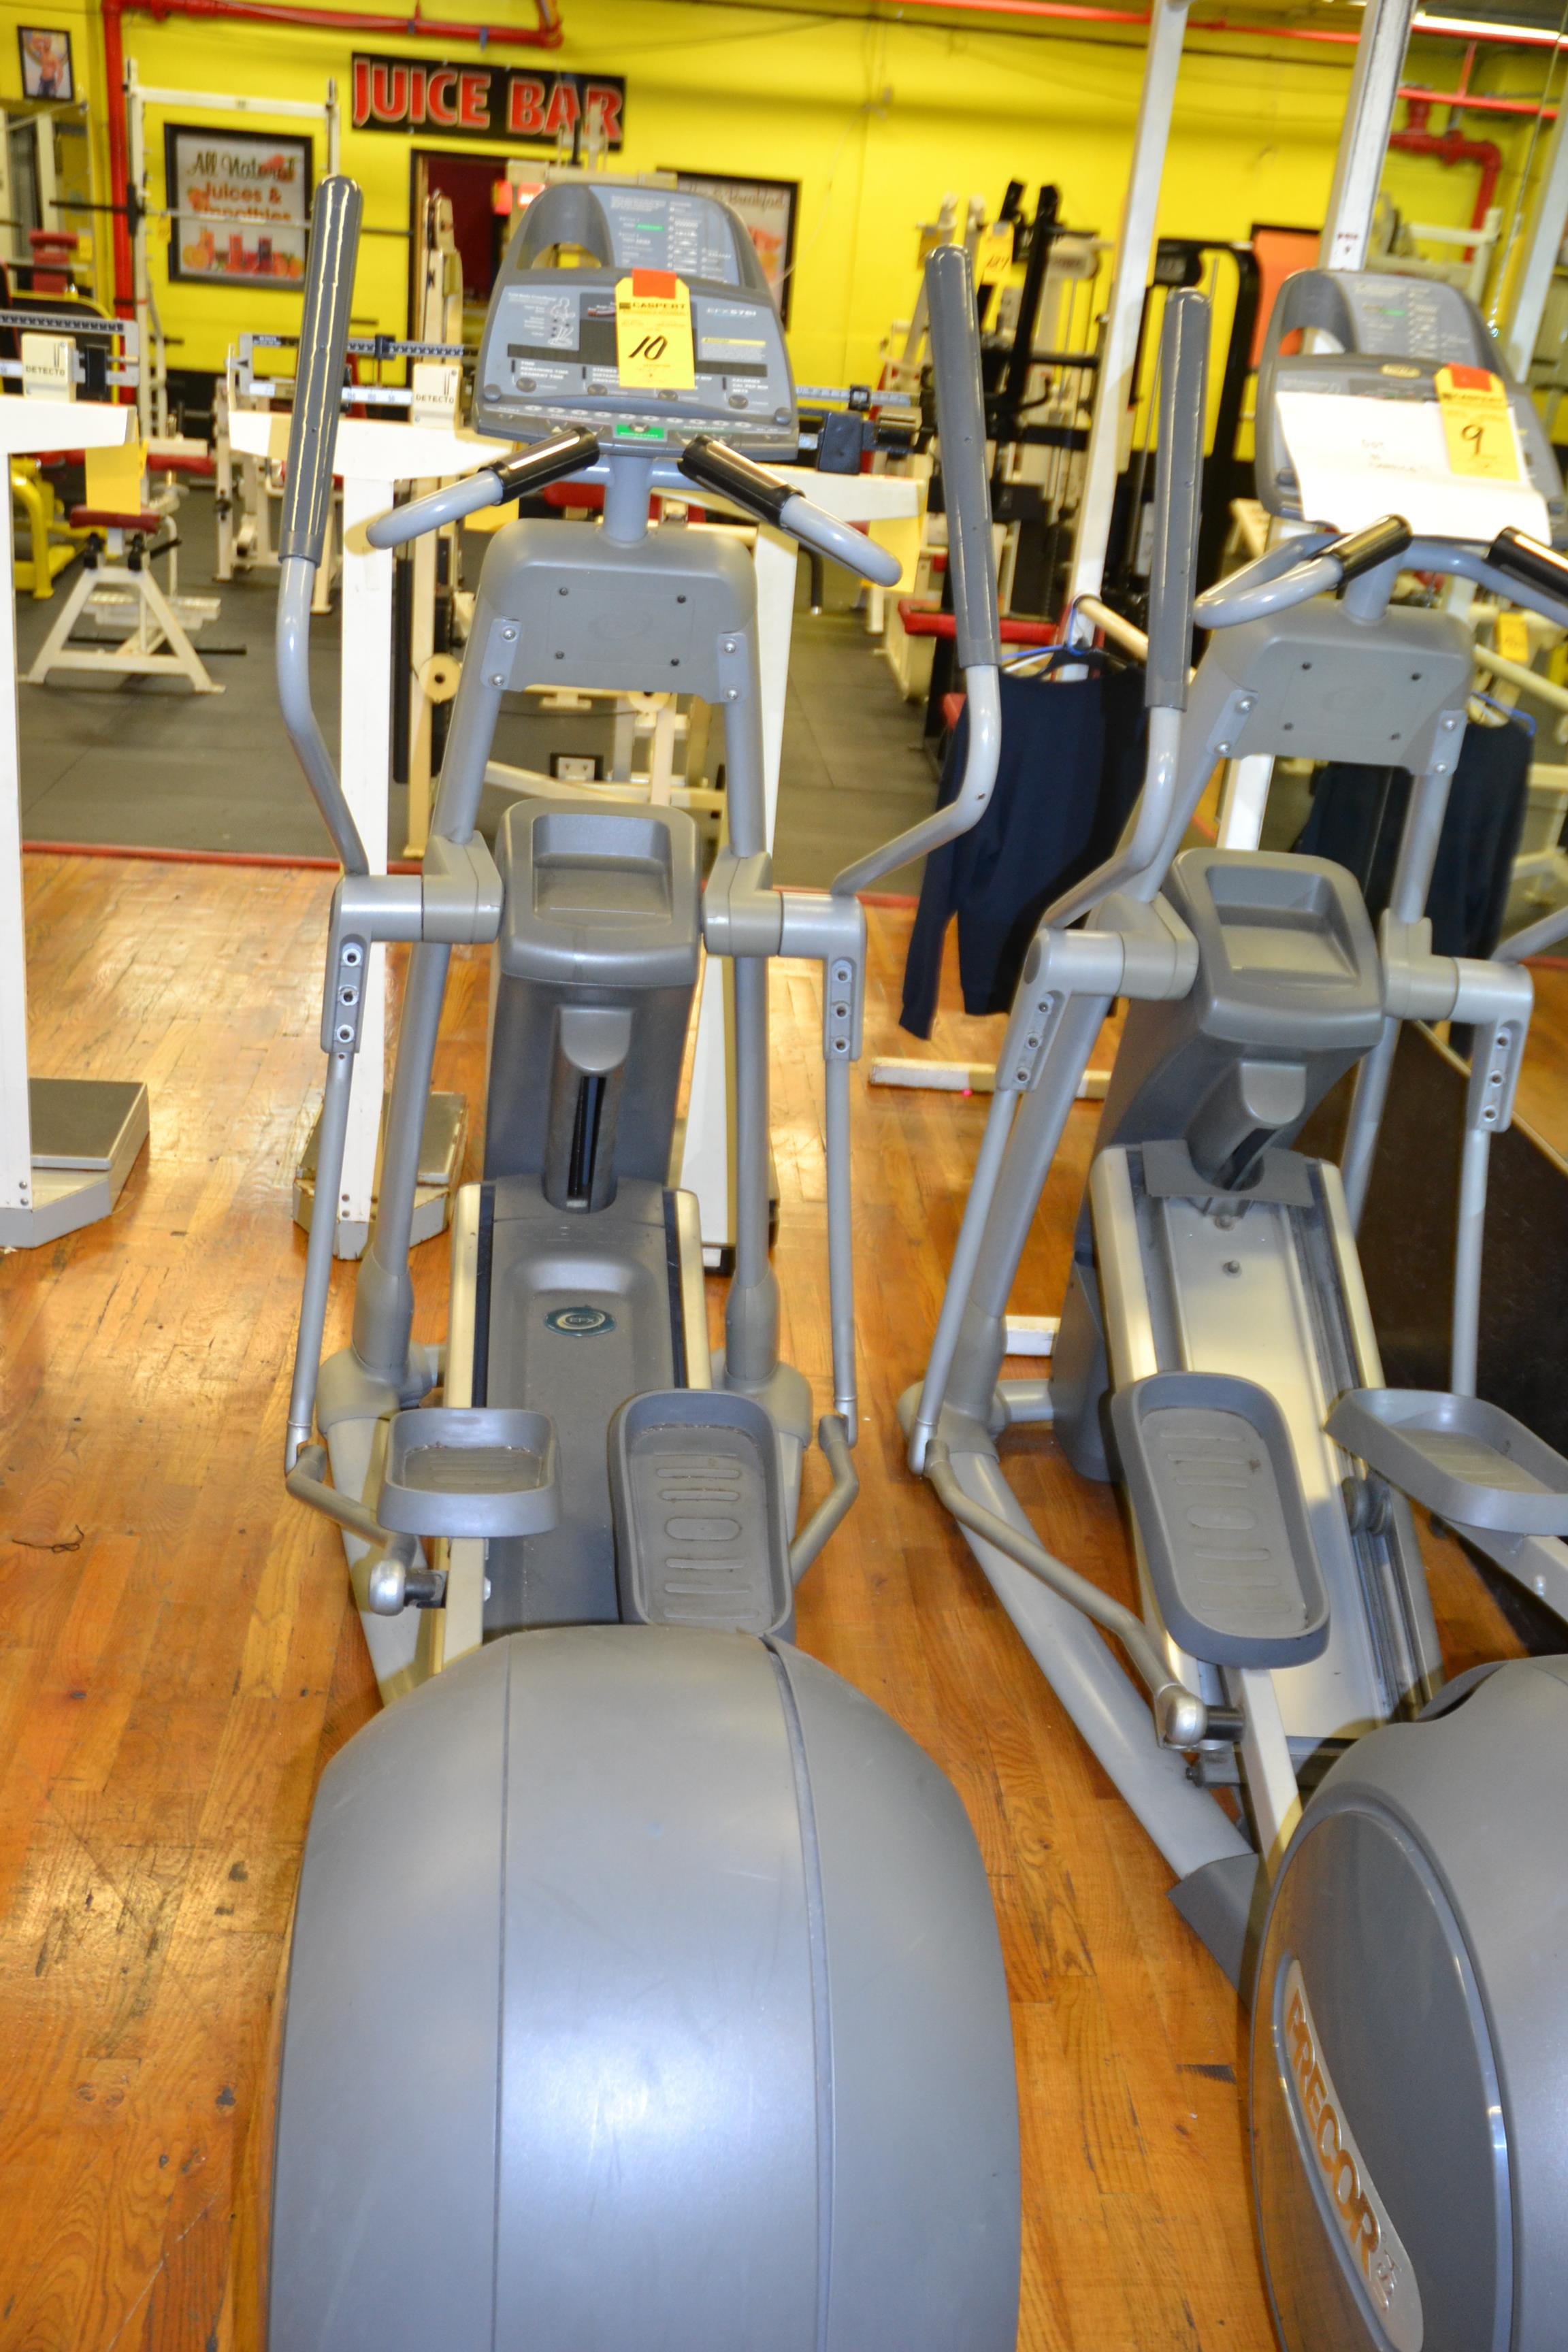 Lot 10 - PRECOR EFX557I ELLIPTICAL